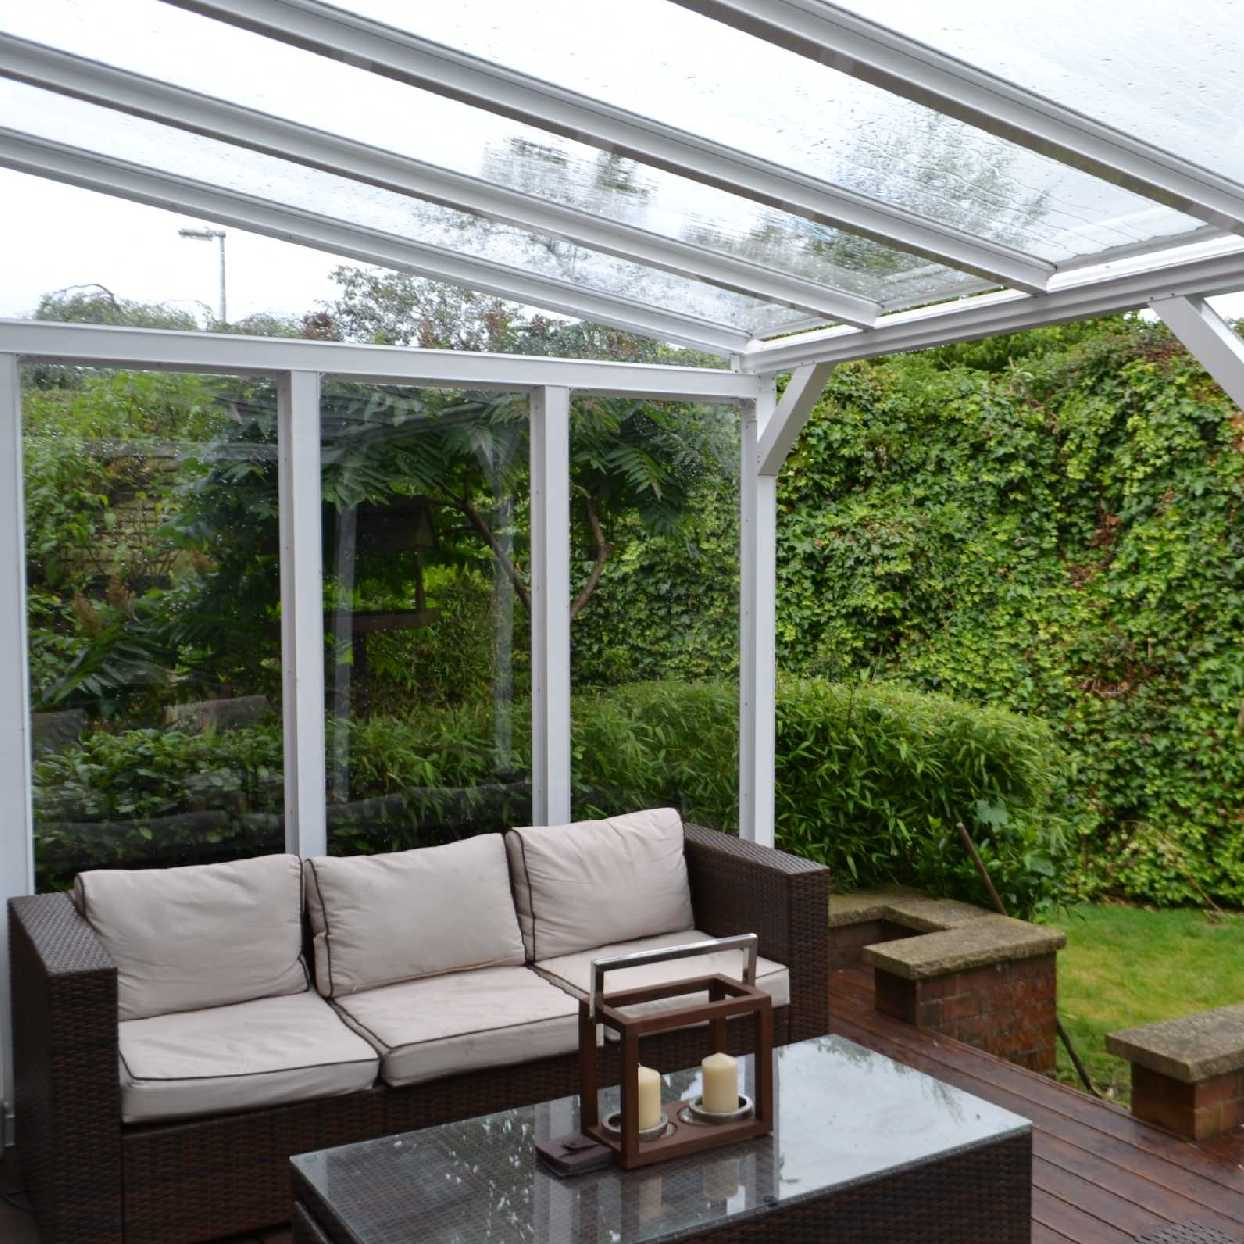 Great selection of Omega Smart White Lean-To Canopy with 16mm Polycarbonate Glazing - 8.4m (W) x 4.0m (P), (4) Supporting Posts